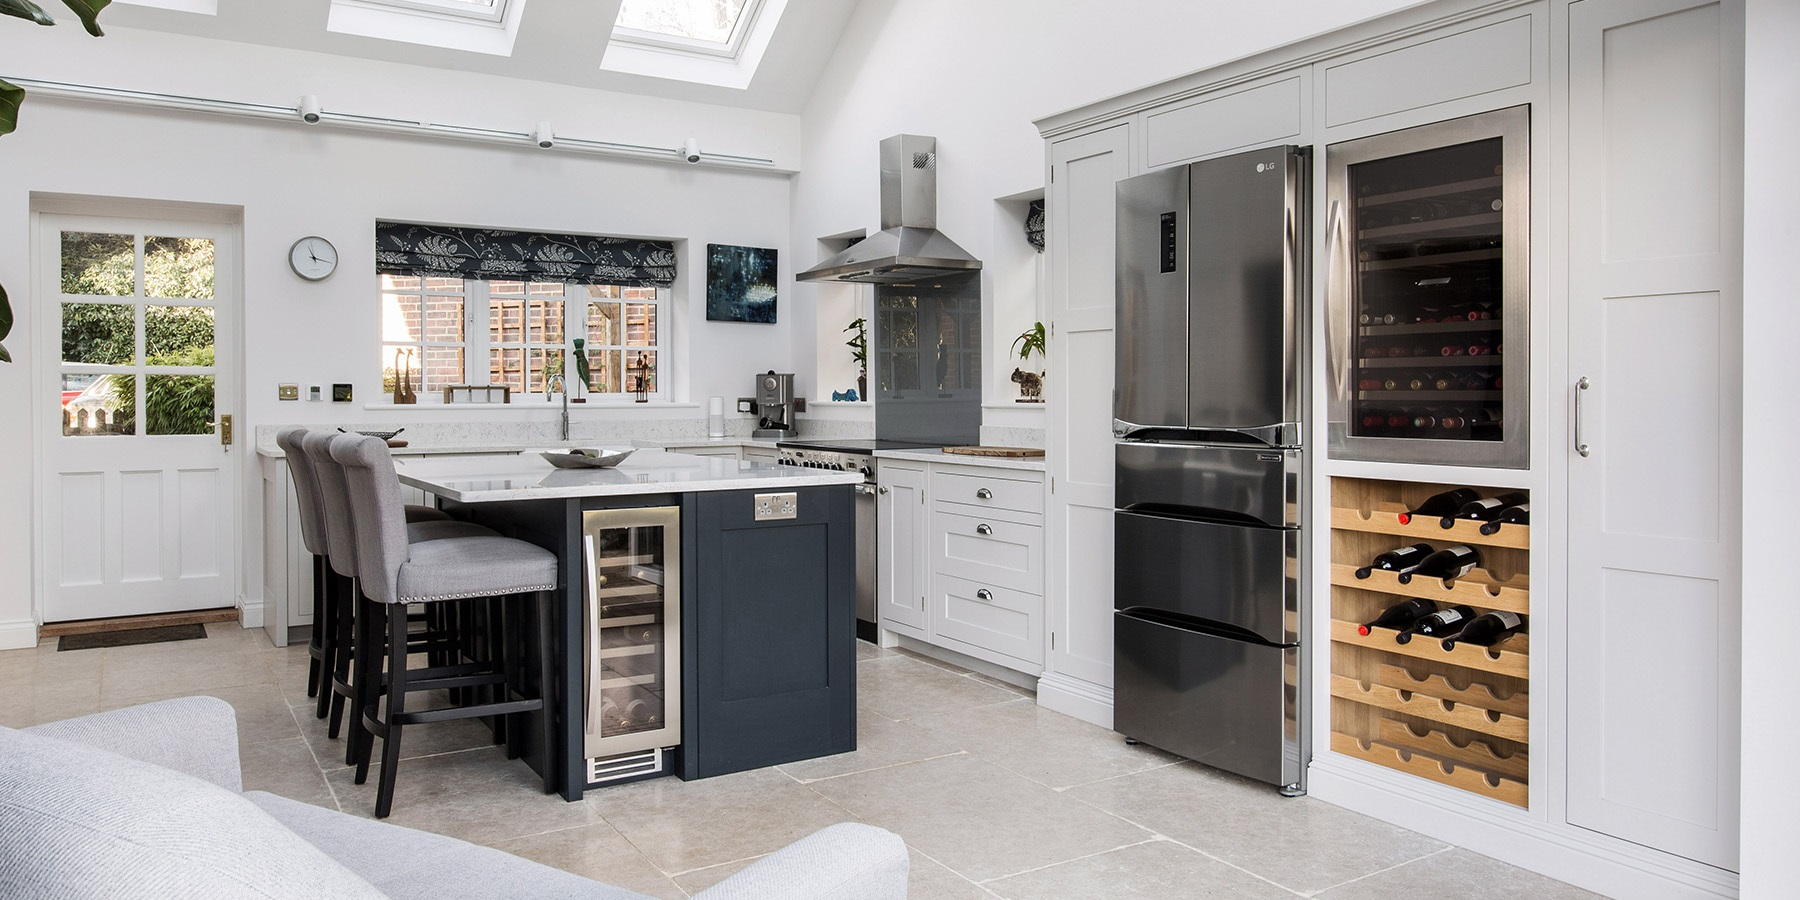 Burlanes Handmade Shaker Kitchen - Bespoke, handmade shaker kitchen with central kitchen island and breakfast bar.